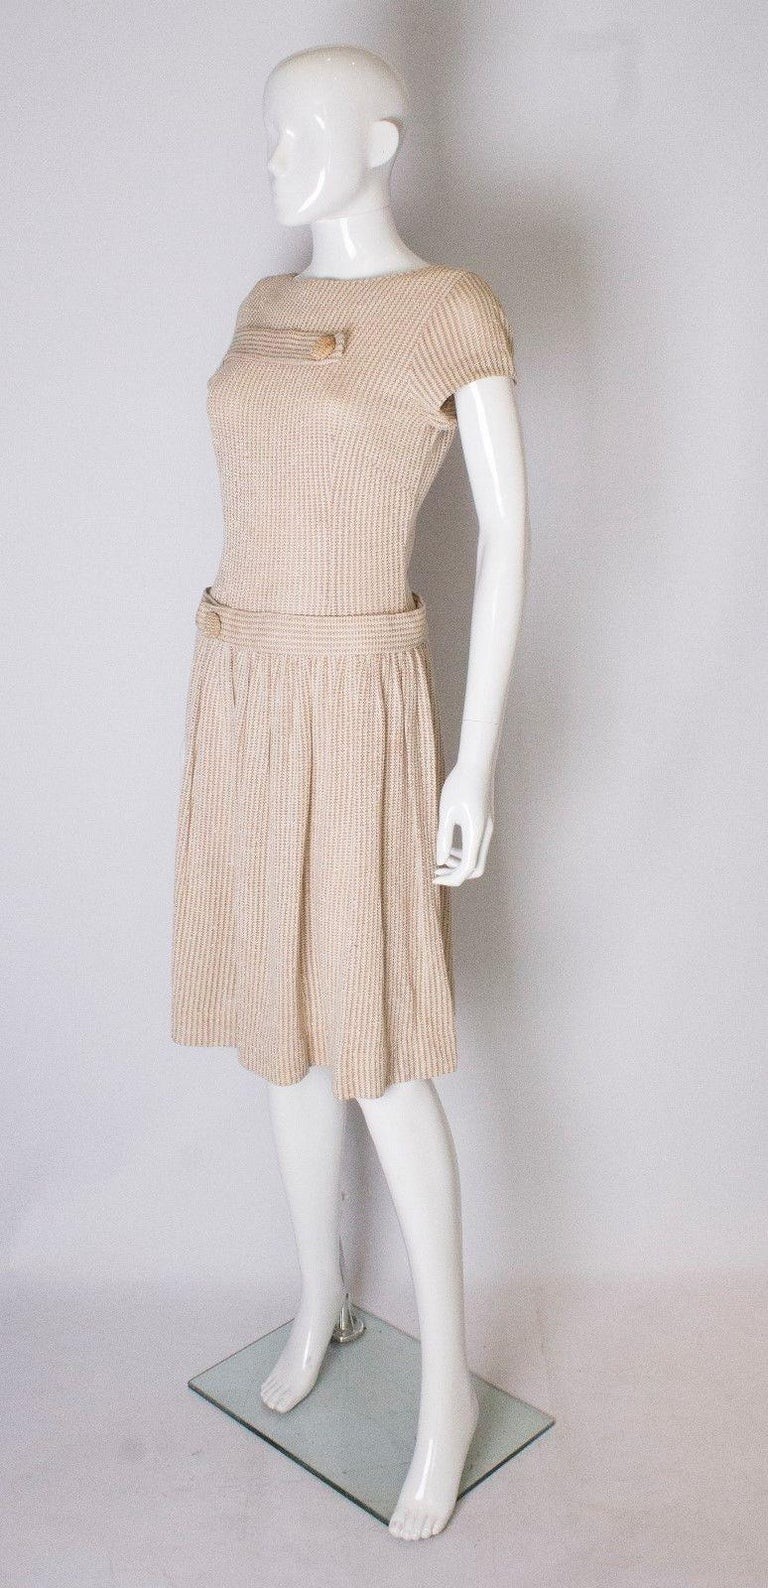 Beige A vintage 1950s cream knitted drop waist glitter thread dress size S Small  For Sale